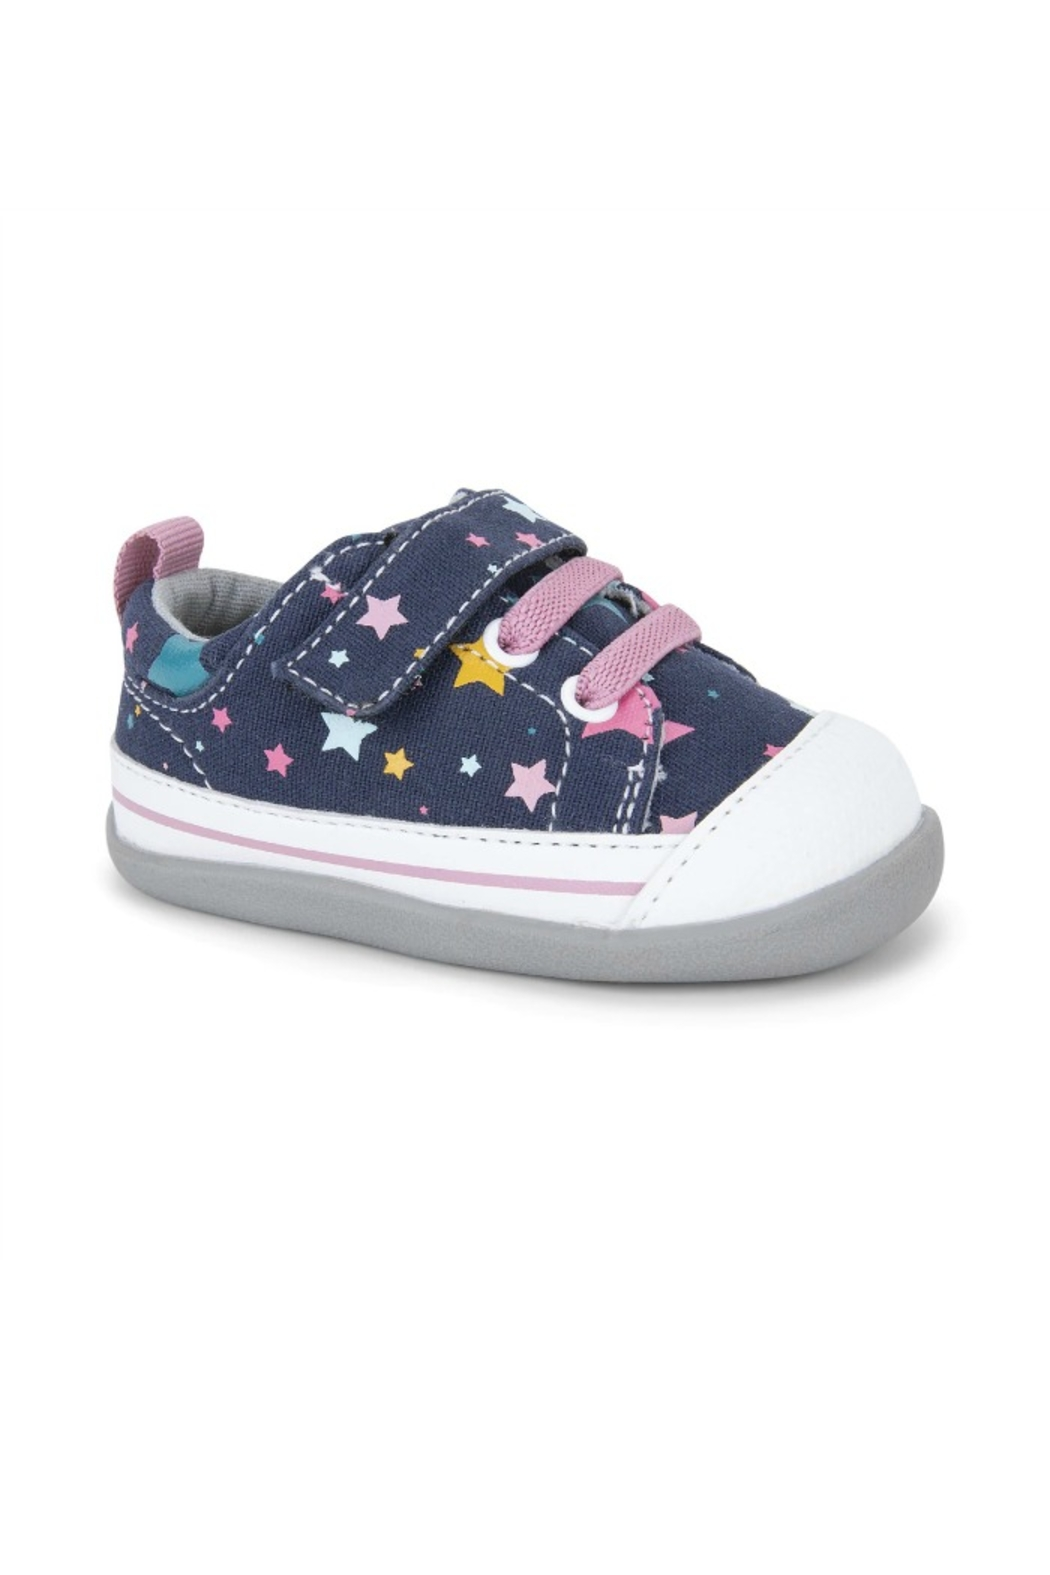 See Kai Run  Stevie II in Navy/Stars - Front Cropped Image